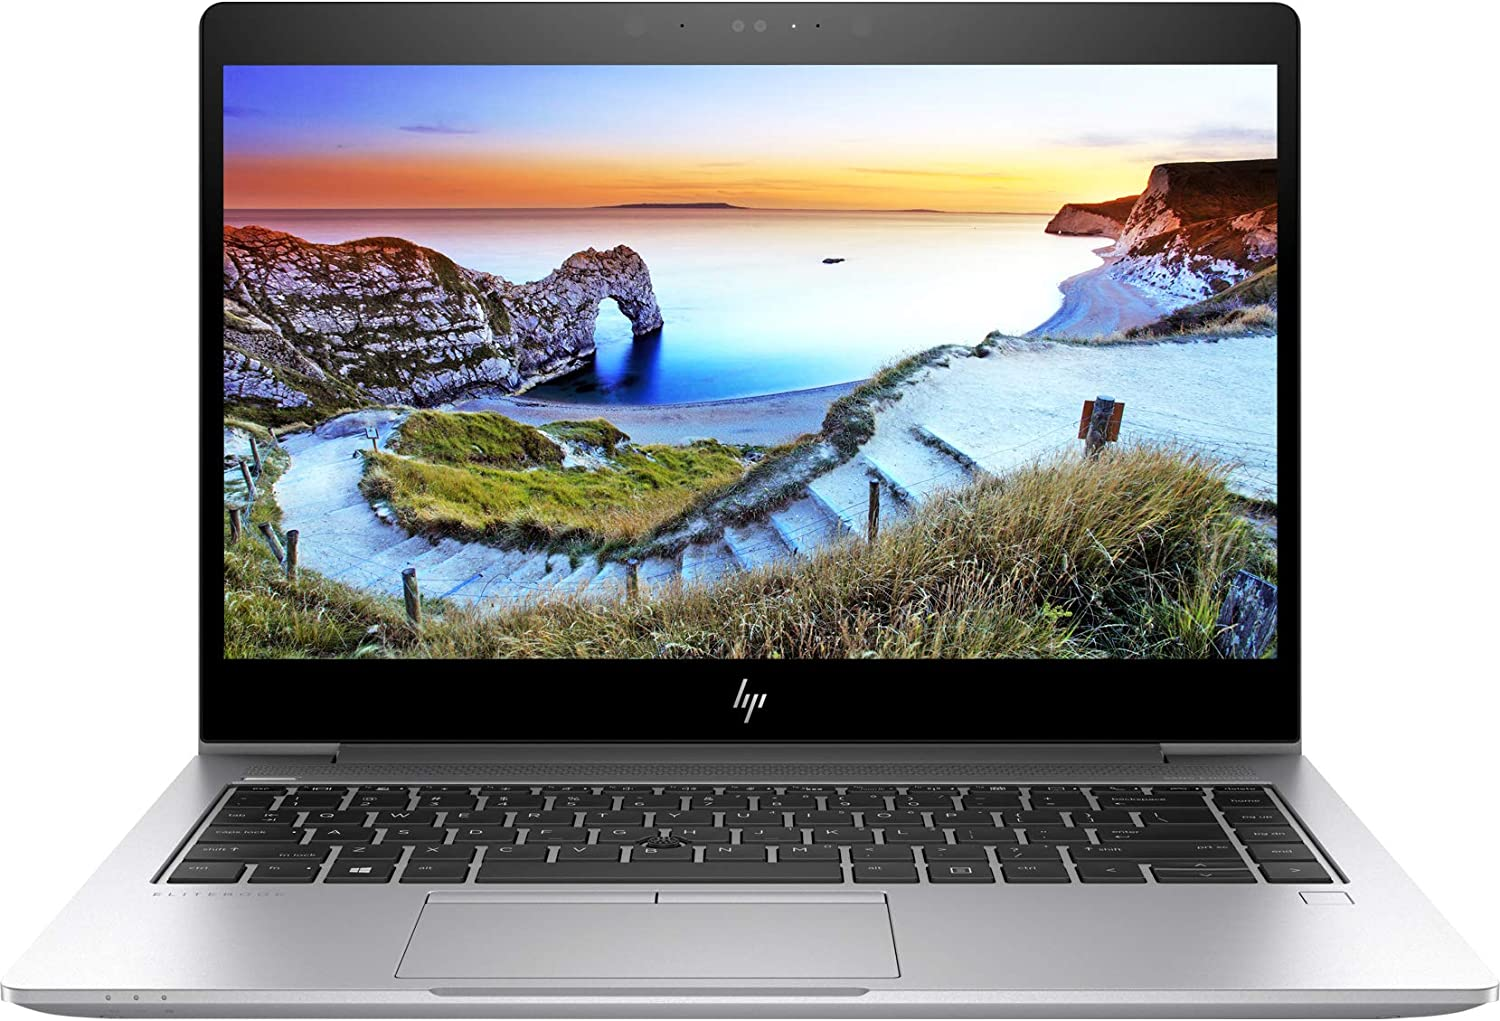 "2019 HP Elitebook 840 G5 14"" IPS Full HD FHD (1920x1080) Business Laptop (Intel Quad-Core i5-8250U, 8GB DDR4 RAM, 256GB PCIe NVMe M.2 SSD) Backlit, Type-C Thunderbolt, B&O Audio, HDMI, Windows 10 Pro"